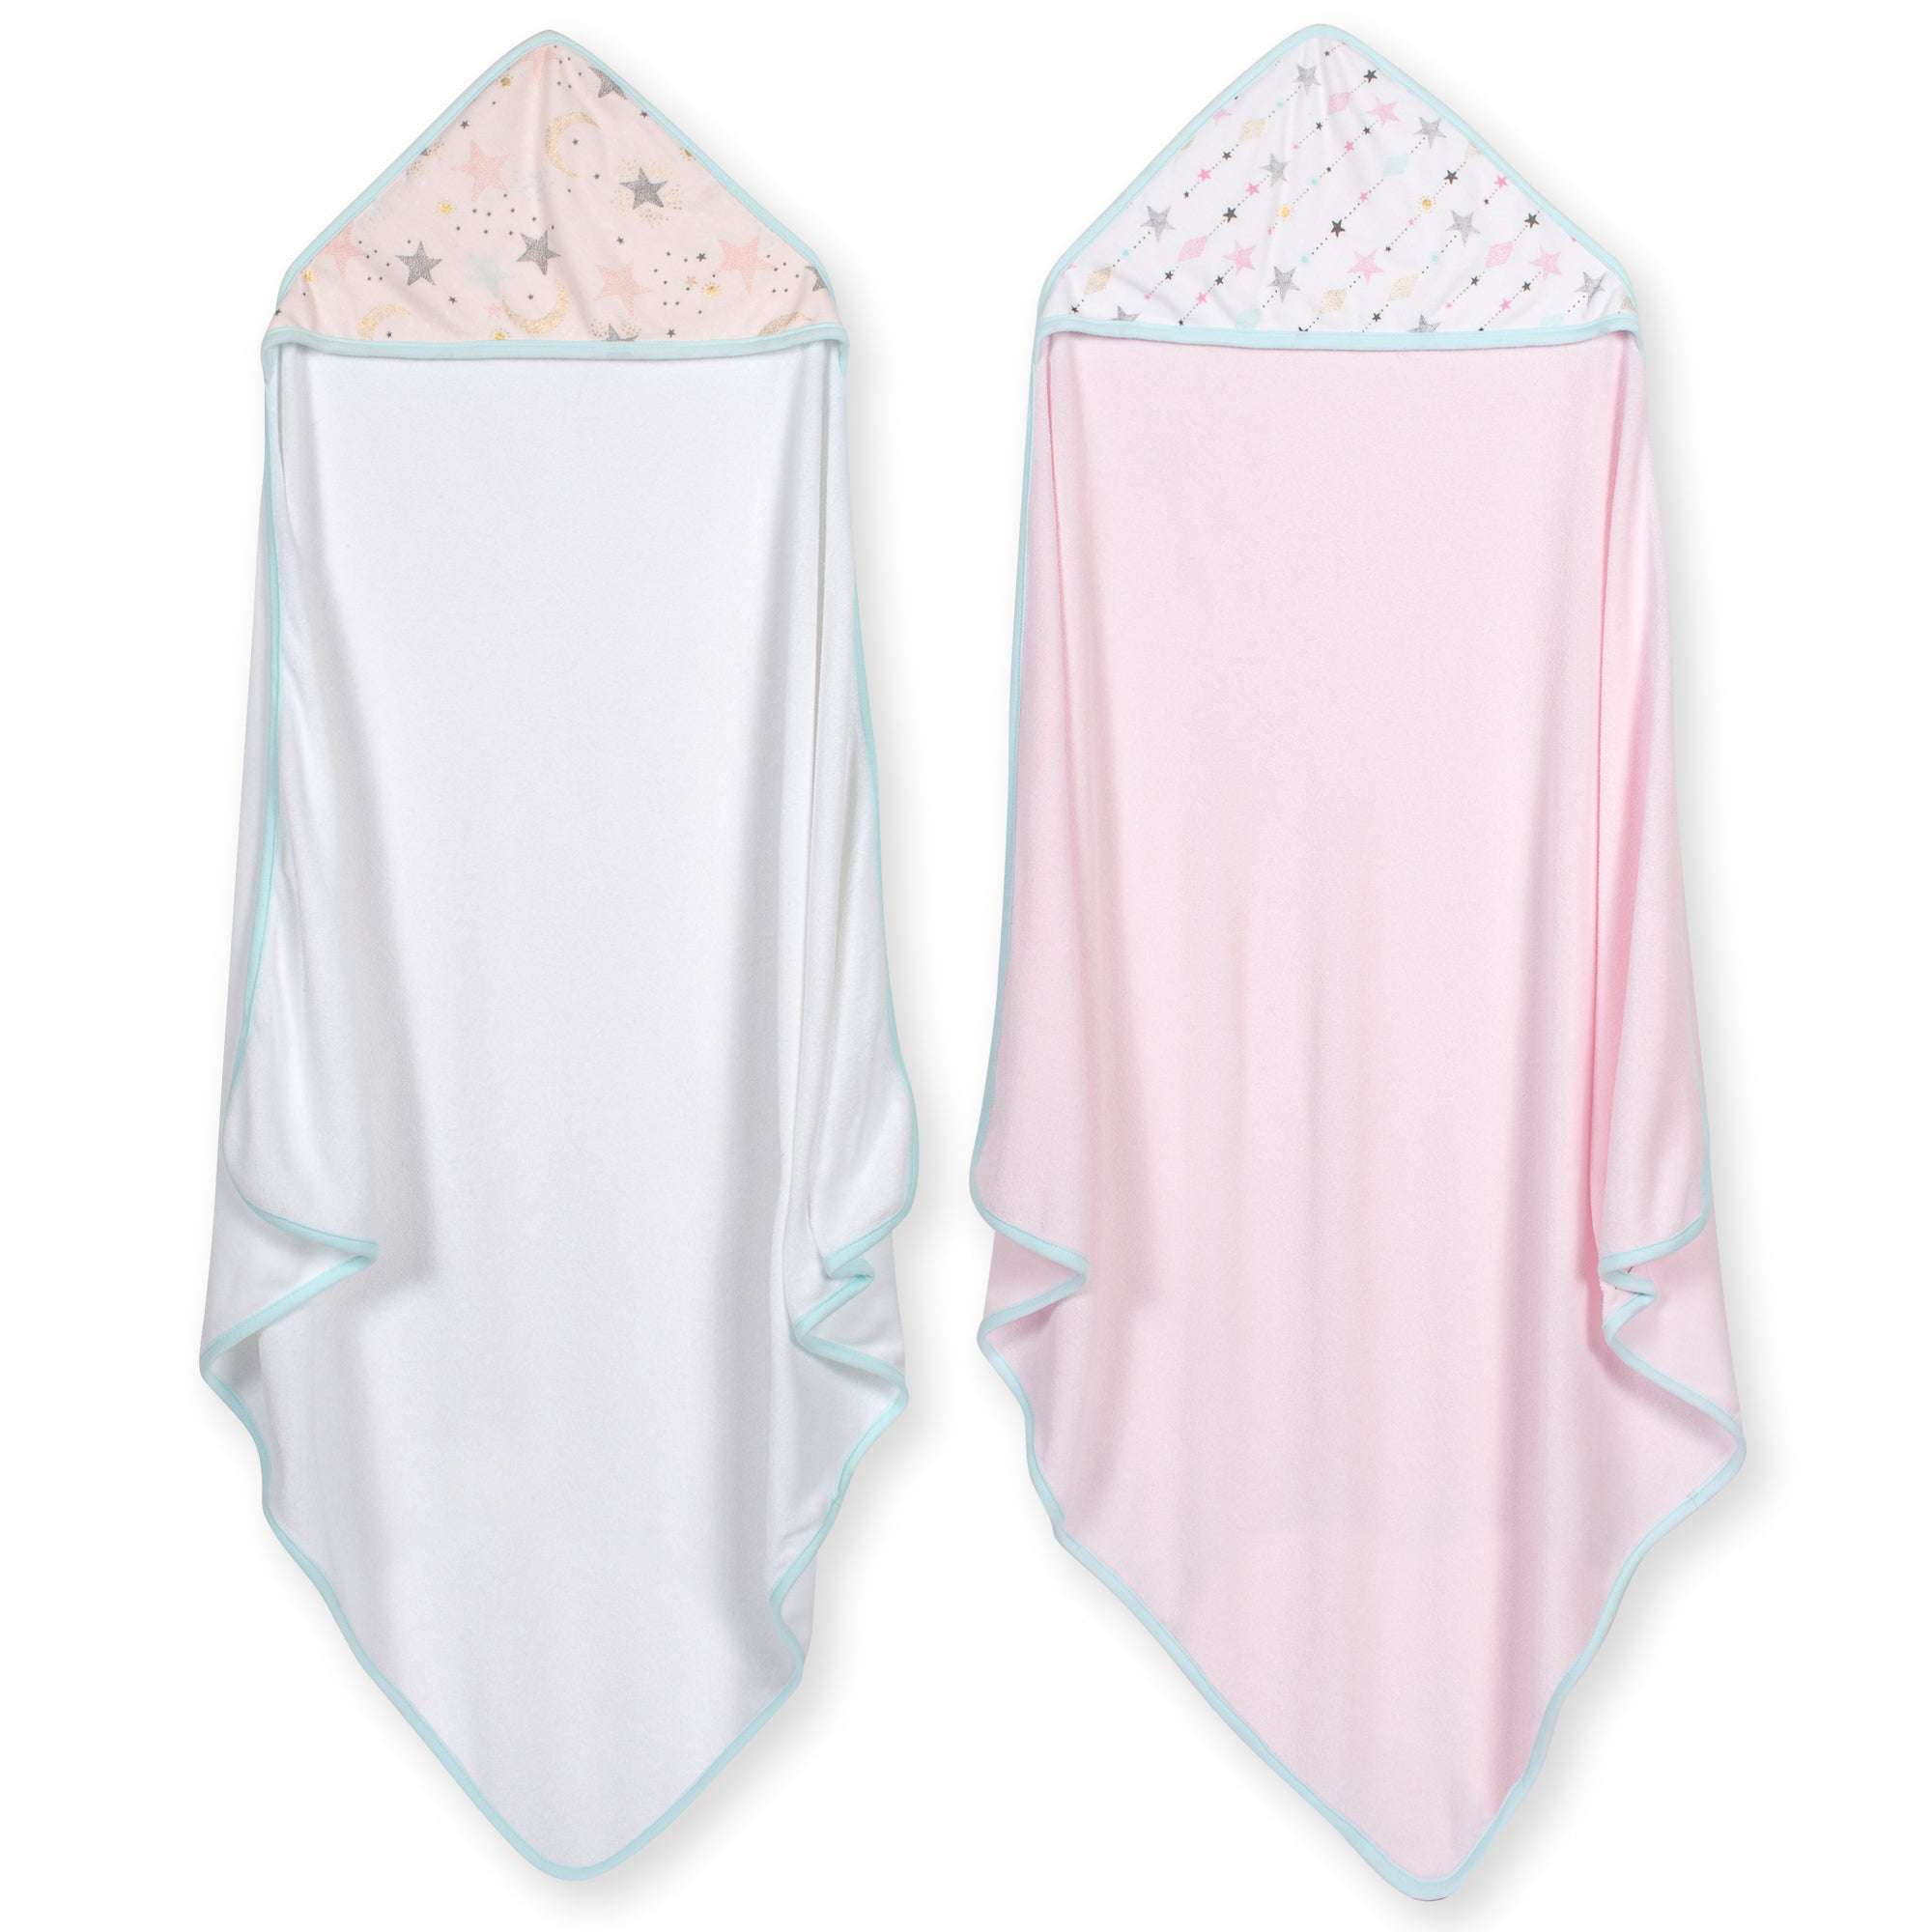 2-Pack Baby Girls Love and Sugar Hooded Towels-Gerber Childrenswear Wholesale